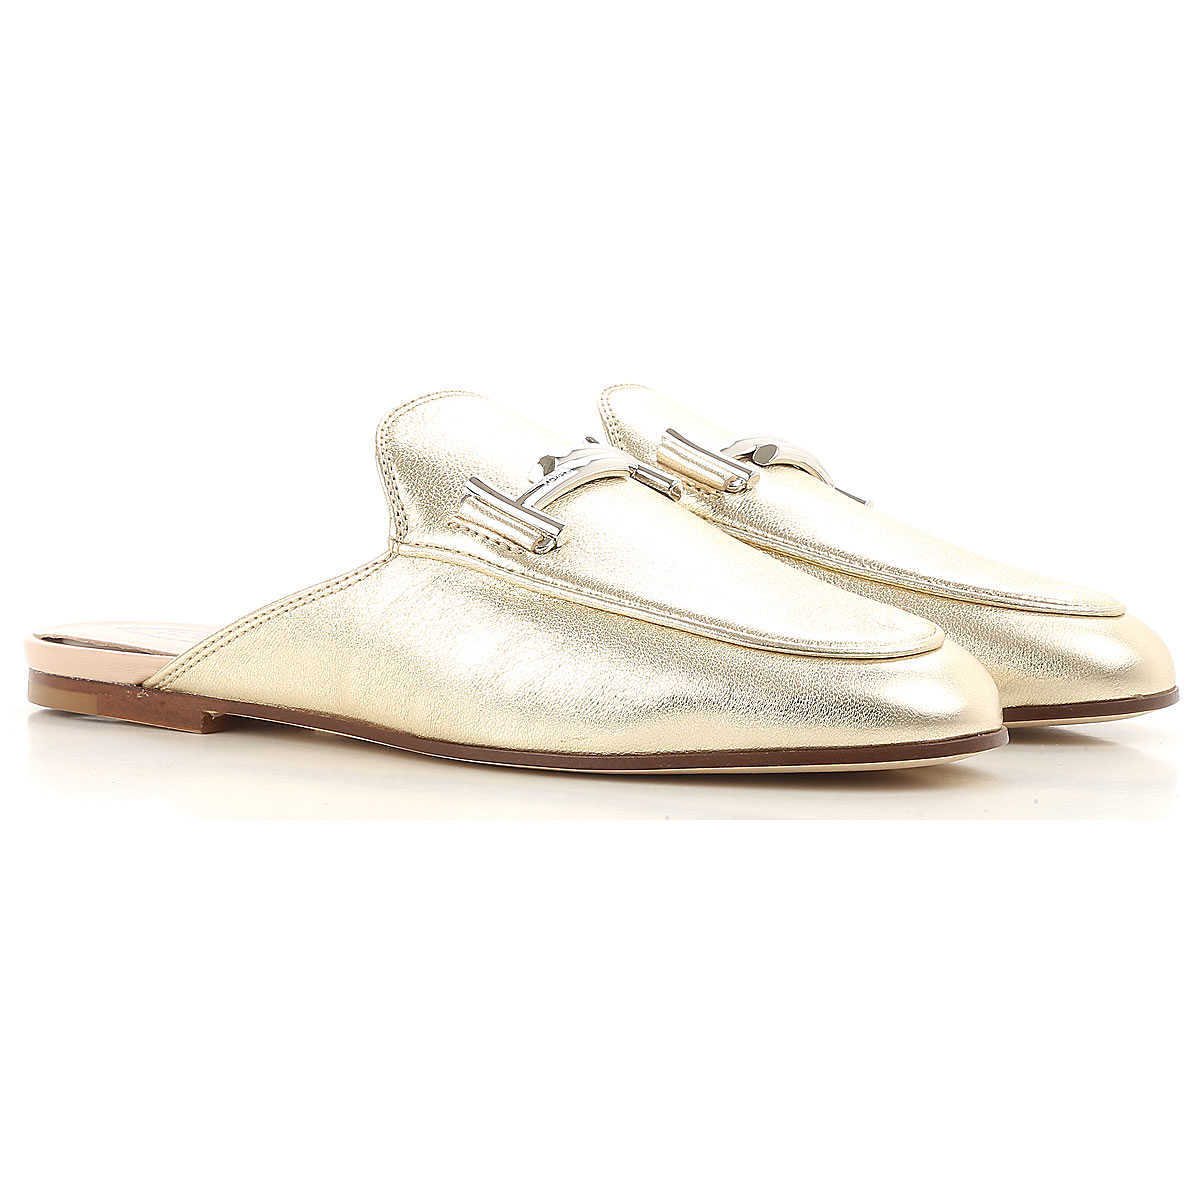 Tods Loafers for Women On Sale Platinum - GOOFASH